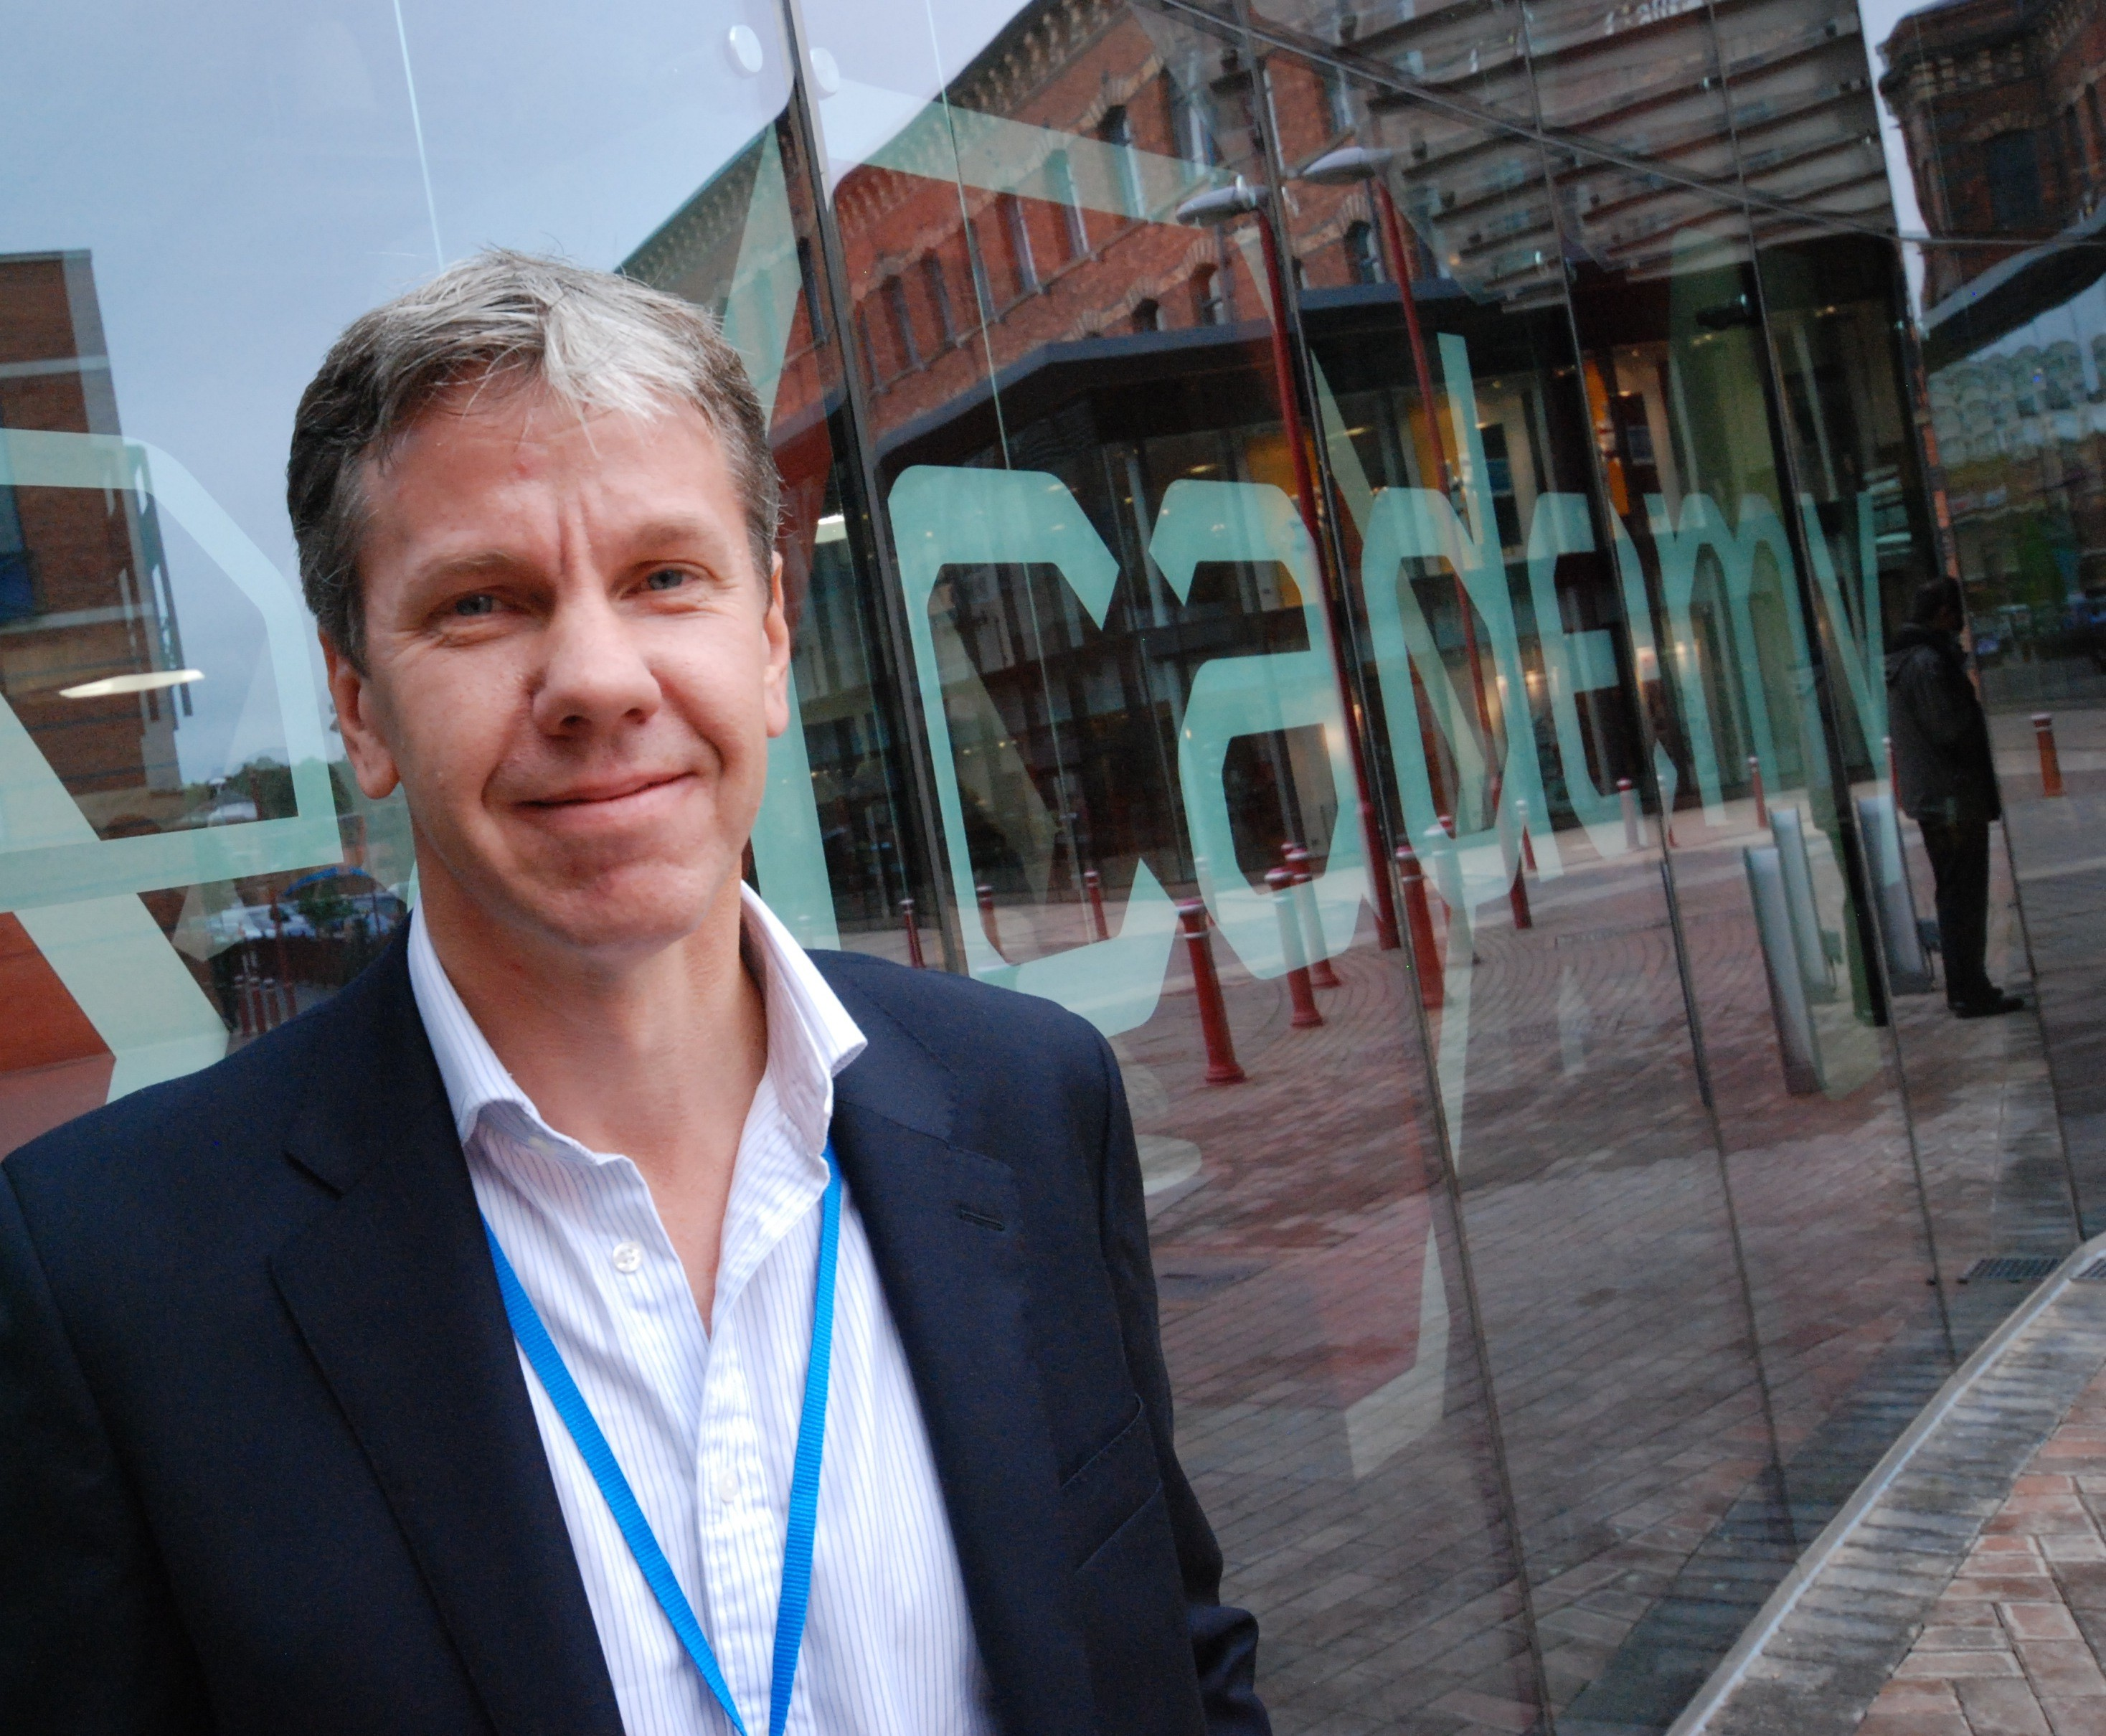 Ian Watts on encouraging people from all walks of life to start new business